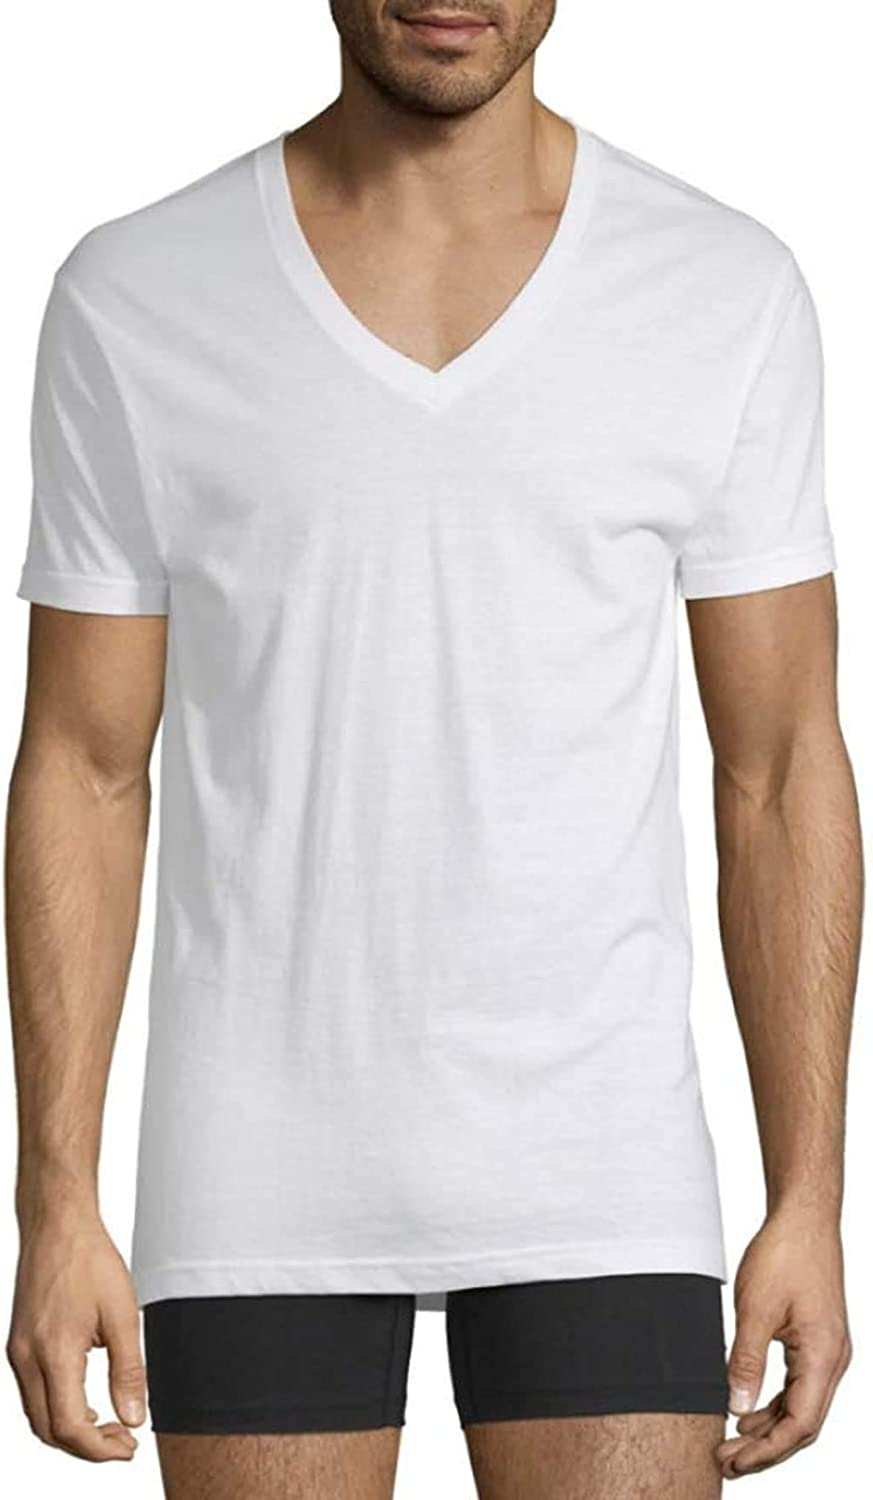 Stafford Mens V-Neck T-Shirts | Tall/X Tall Tagless White Blended | 4 Pack